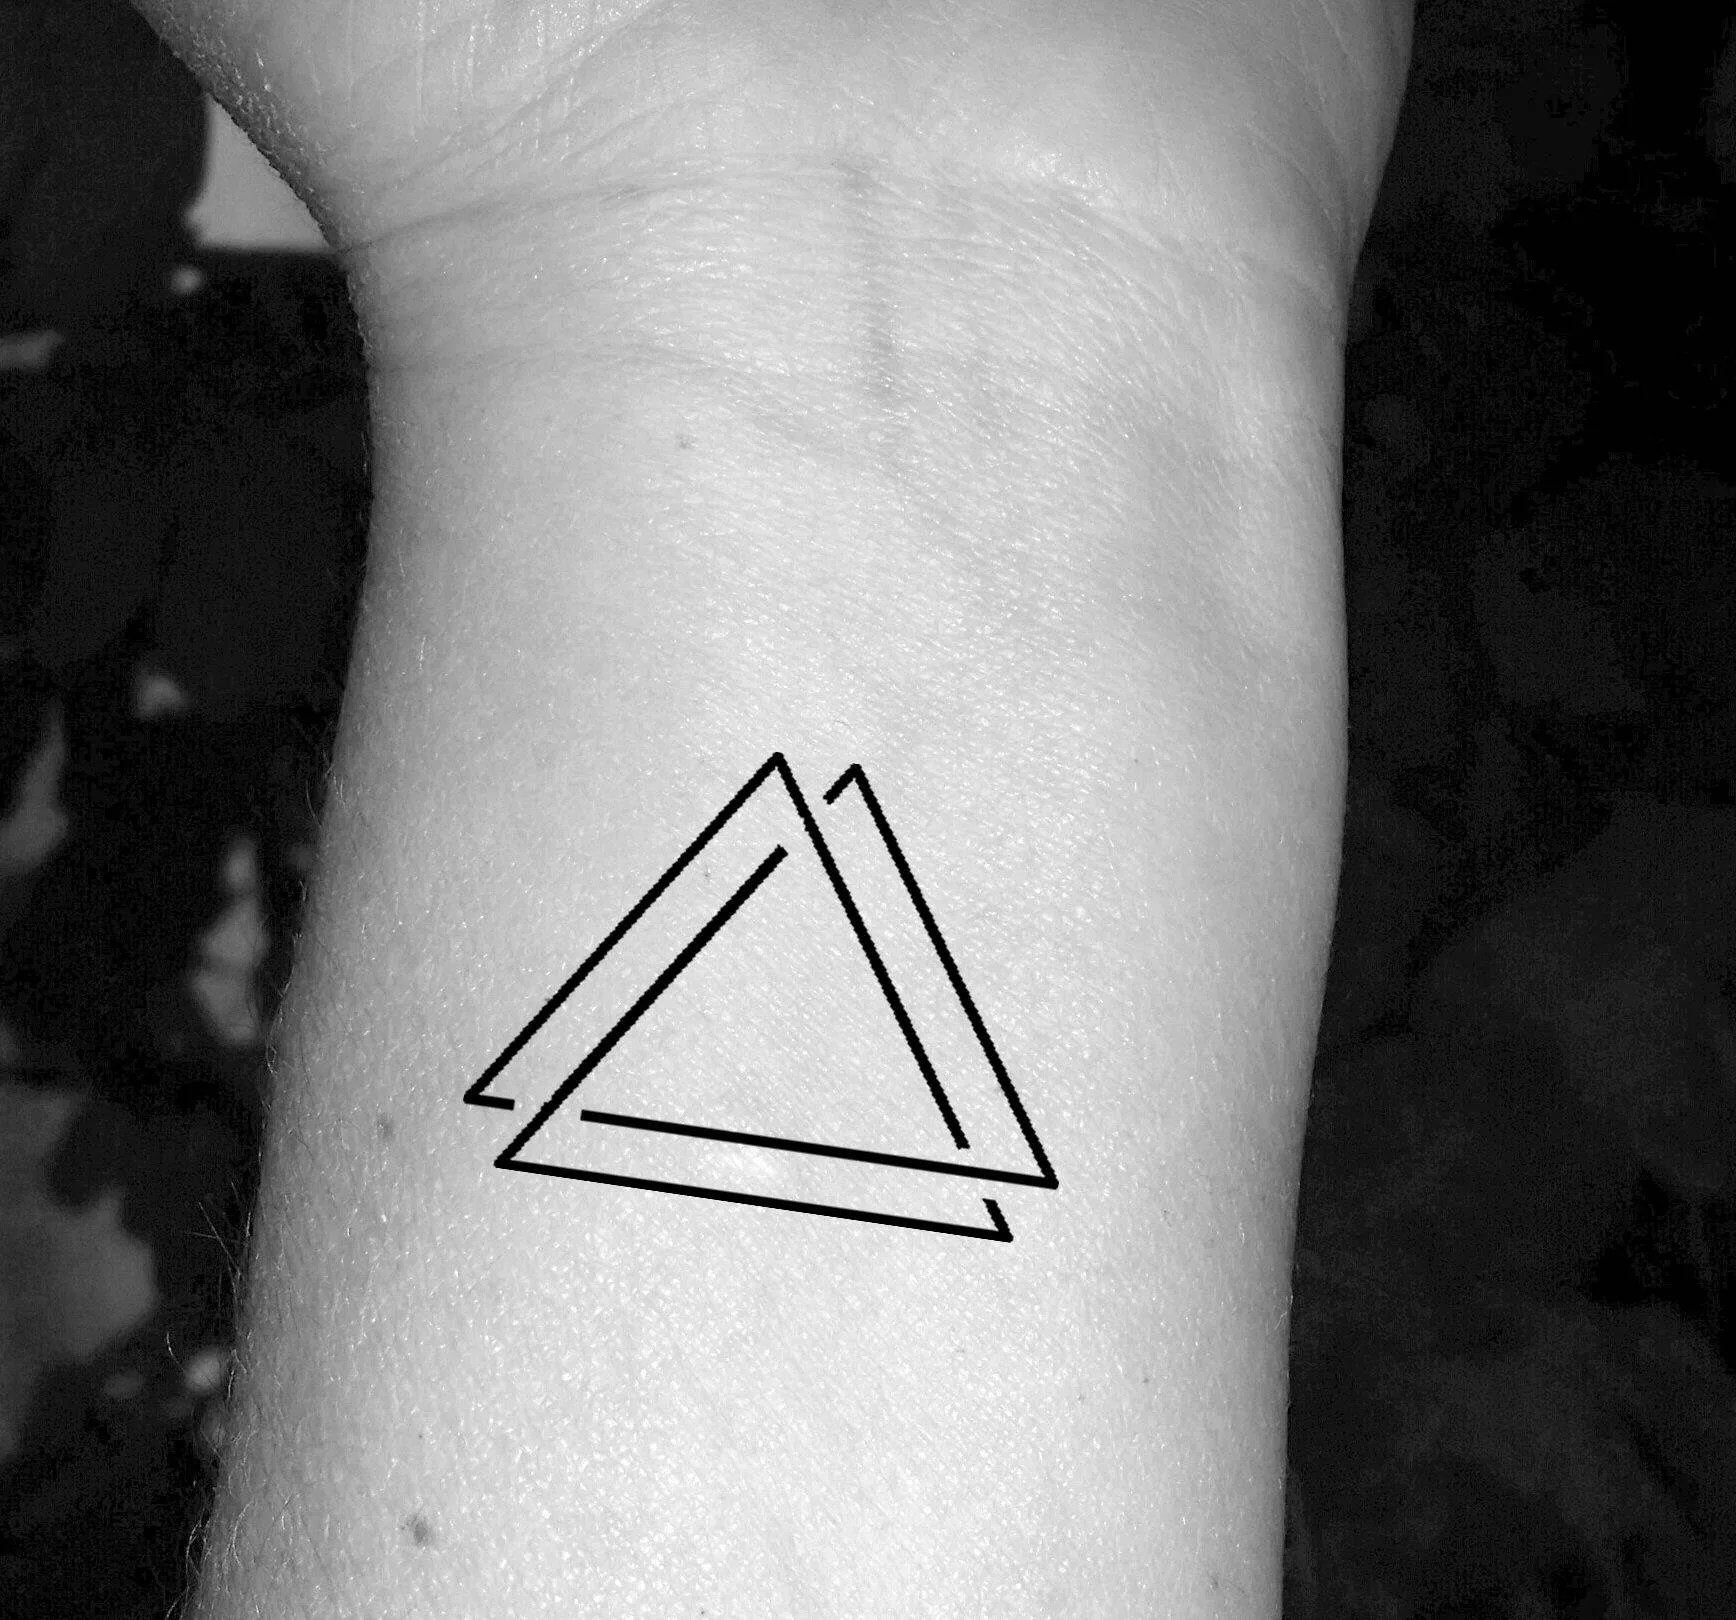 Tatouage triangle triple triangle tatouage trois triangles   Etsy image 0